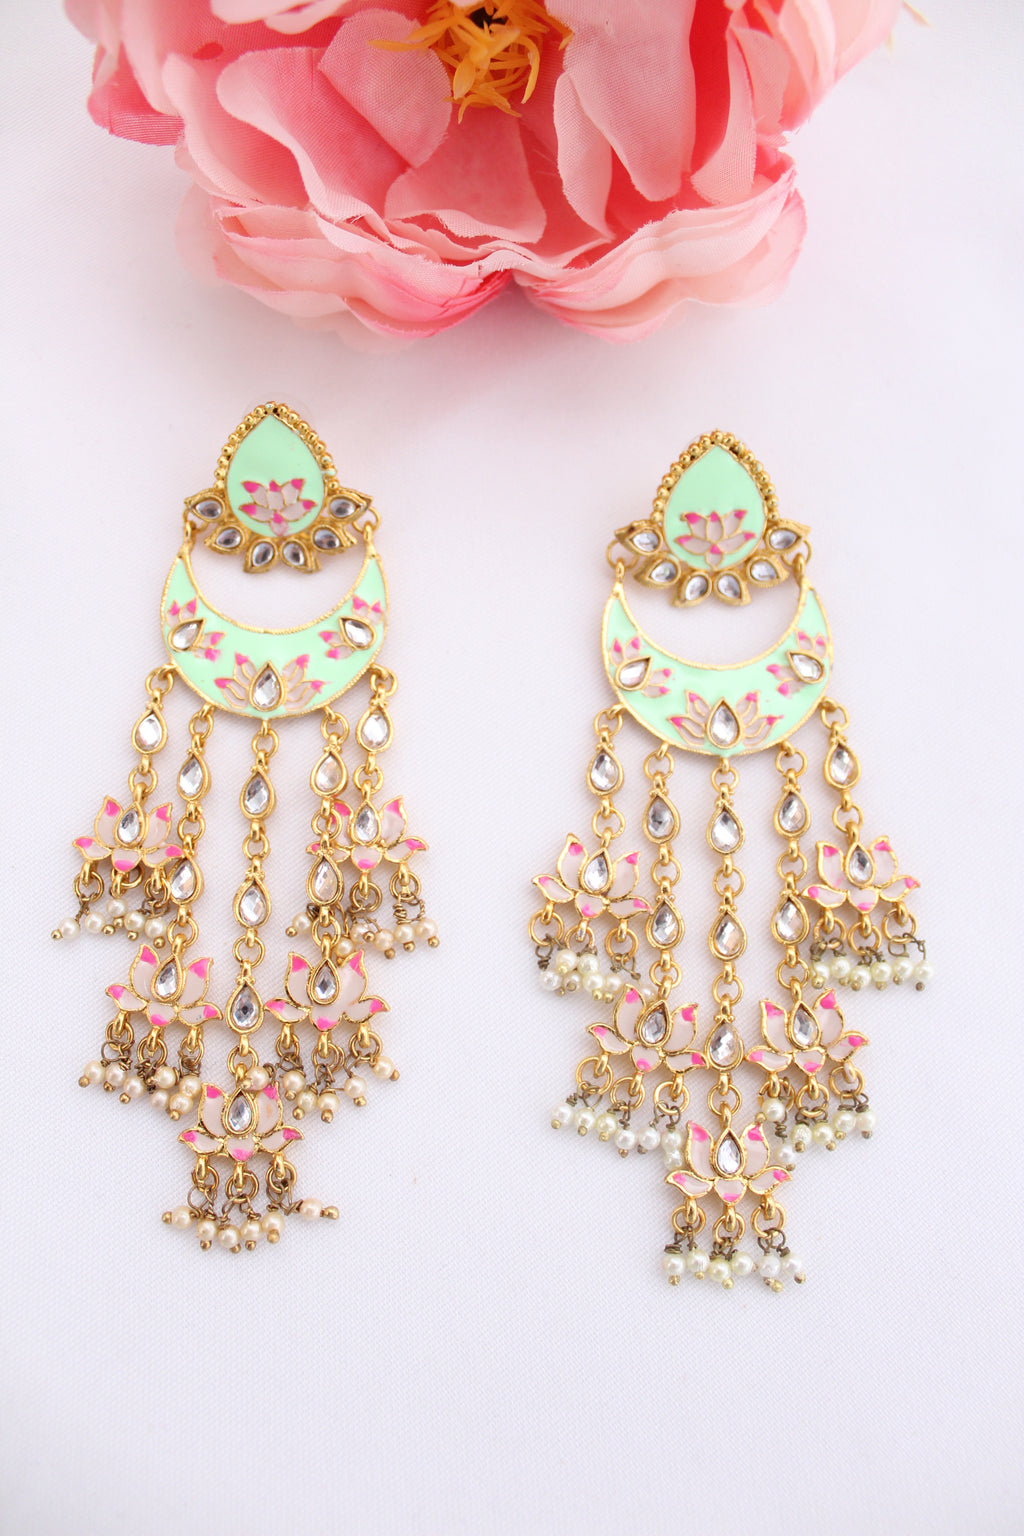 Mint green floral meenakari studs with long danglings